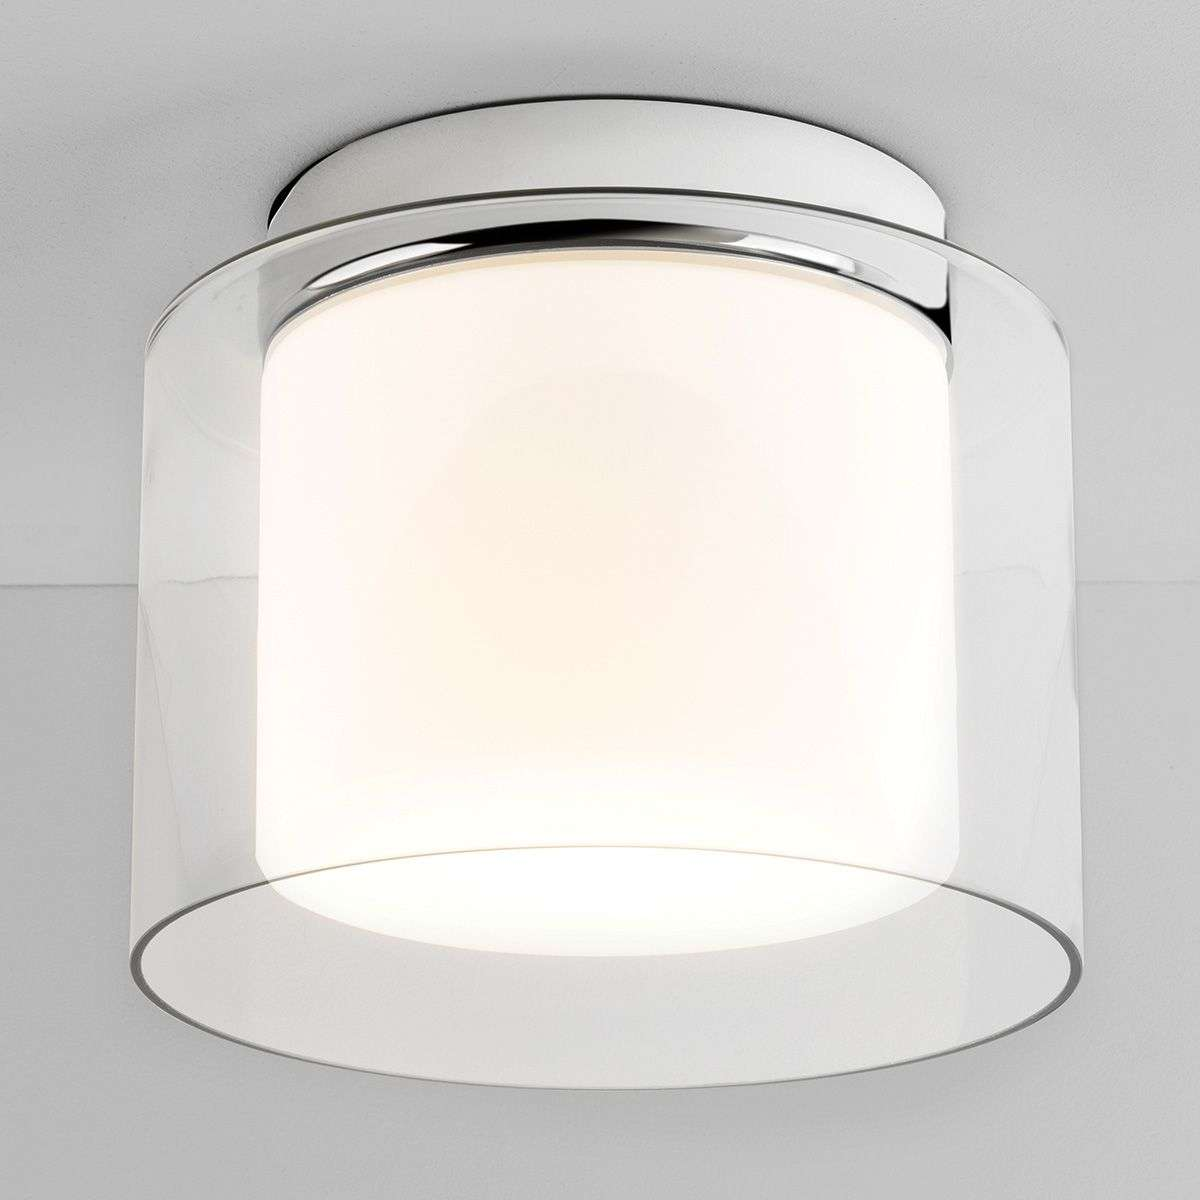 Double glazed ceiling light AREZZO-1020391-32